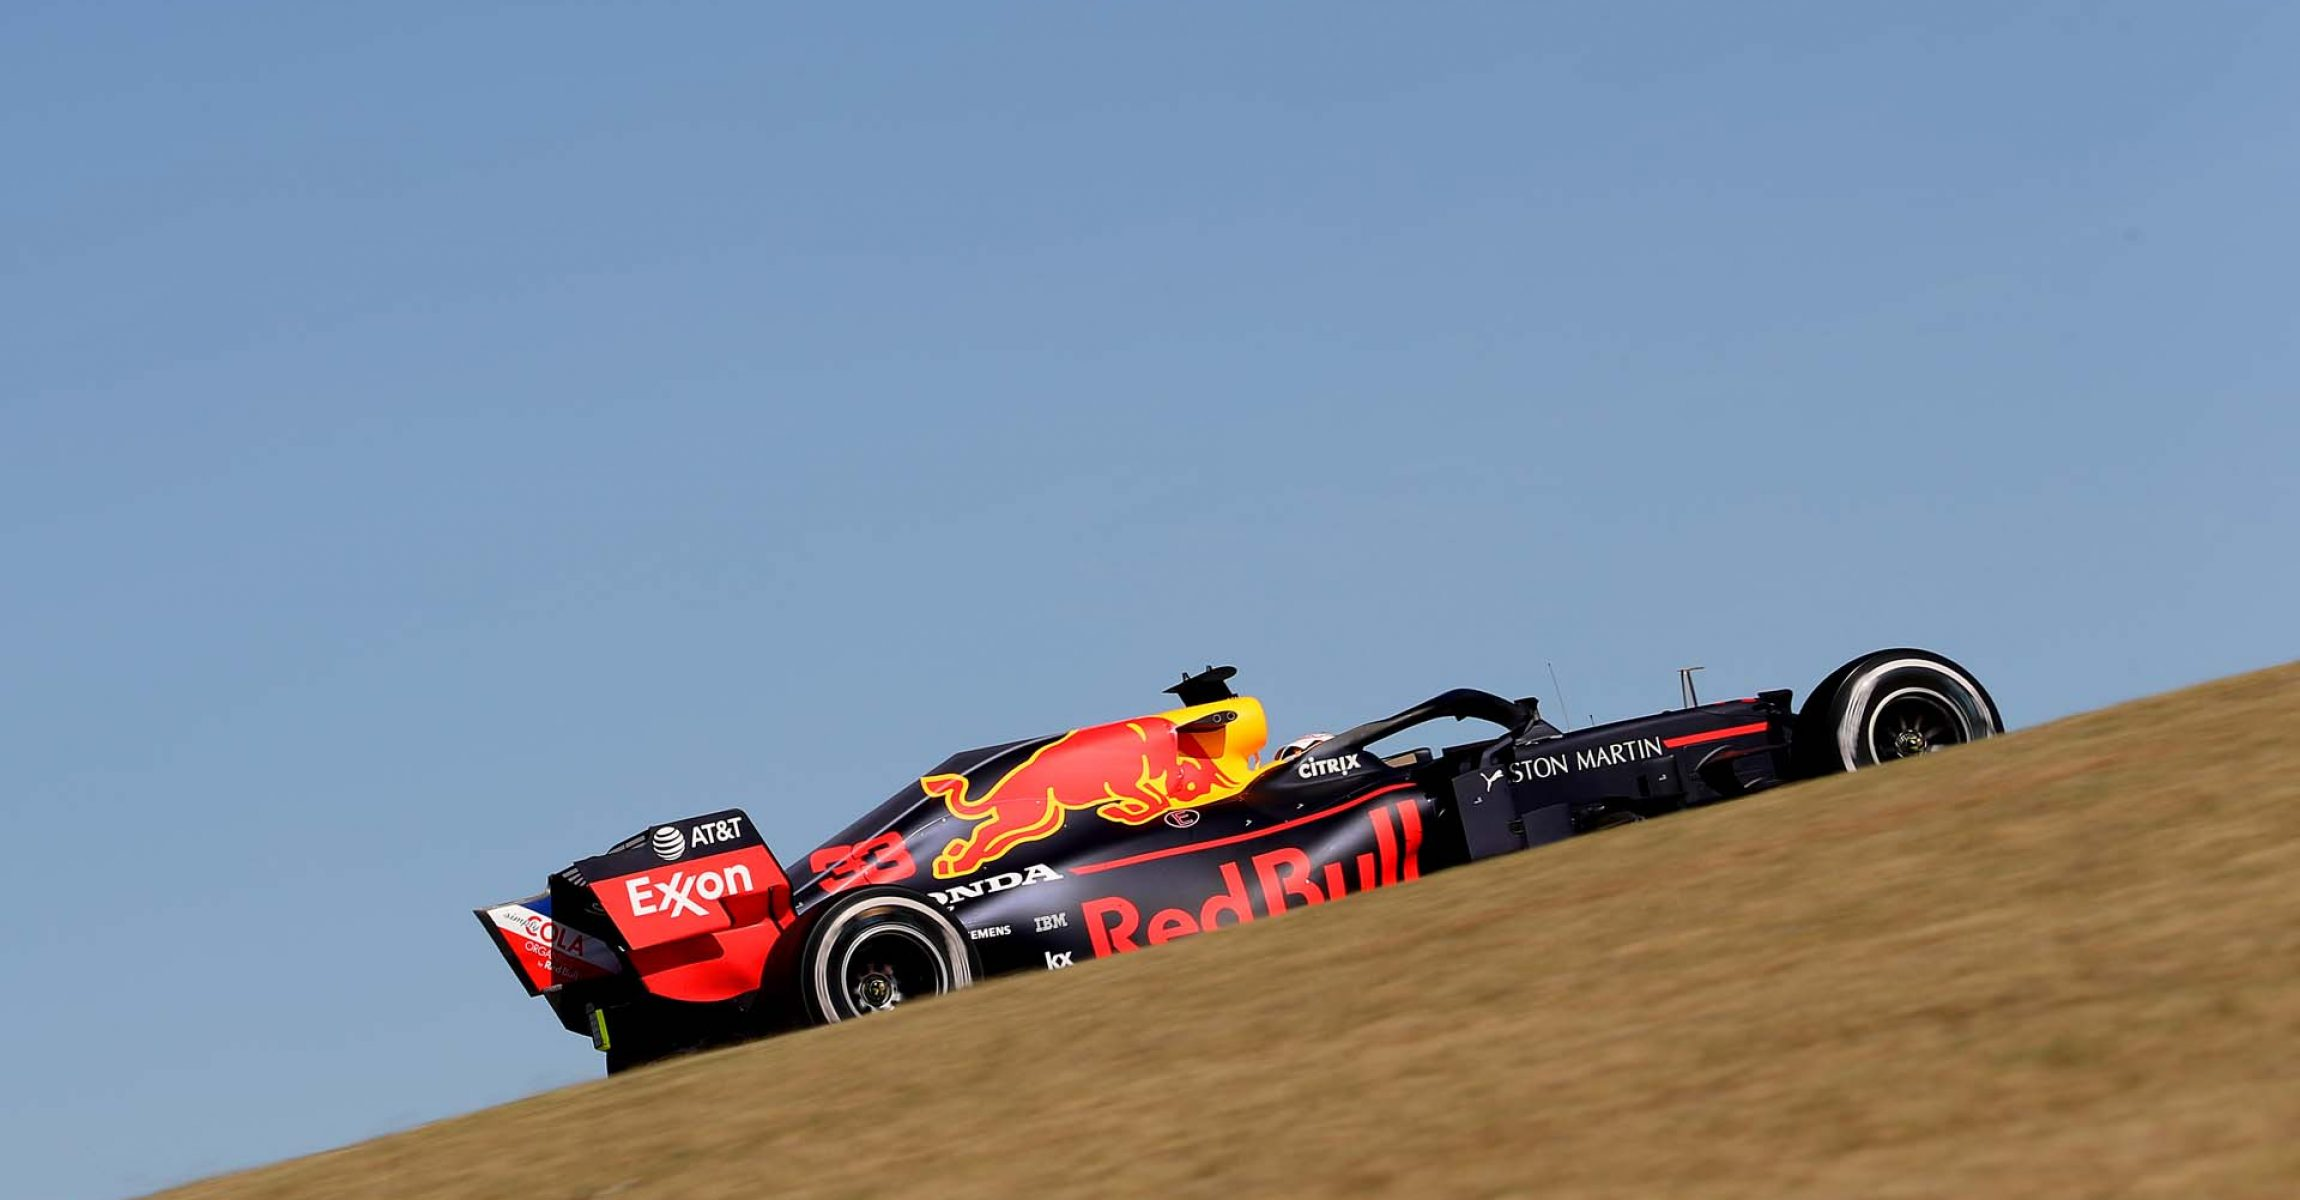 AUSTIN, TEXAS - NOVEMBER 03: Max Verstappen of the Netherlands driving the (33) Aston Martin Red Bull Racing RB15 on track during the F1 Grand Prix of USA at Circuit of The Americas on November 03, 2019 in Austin, Texas. (Photo by Mark Thompson/Getty Images) // Getty Images / Red Bull Content Pool // AP-222YCNU8H2111 // Usage for editorial use only //